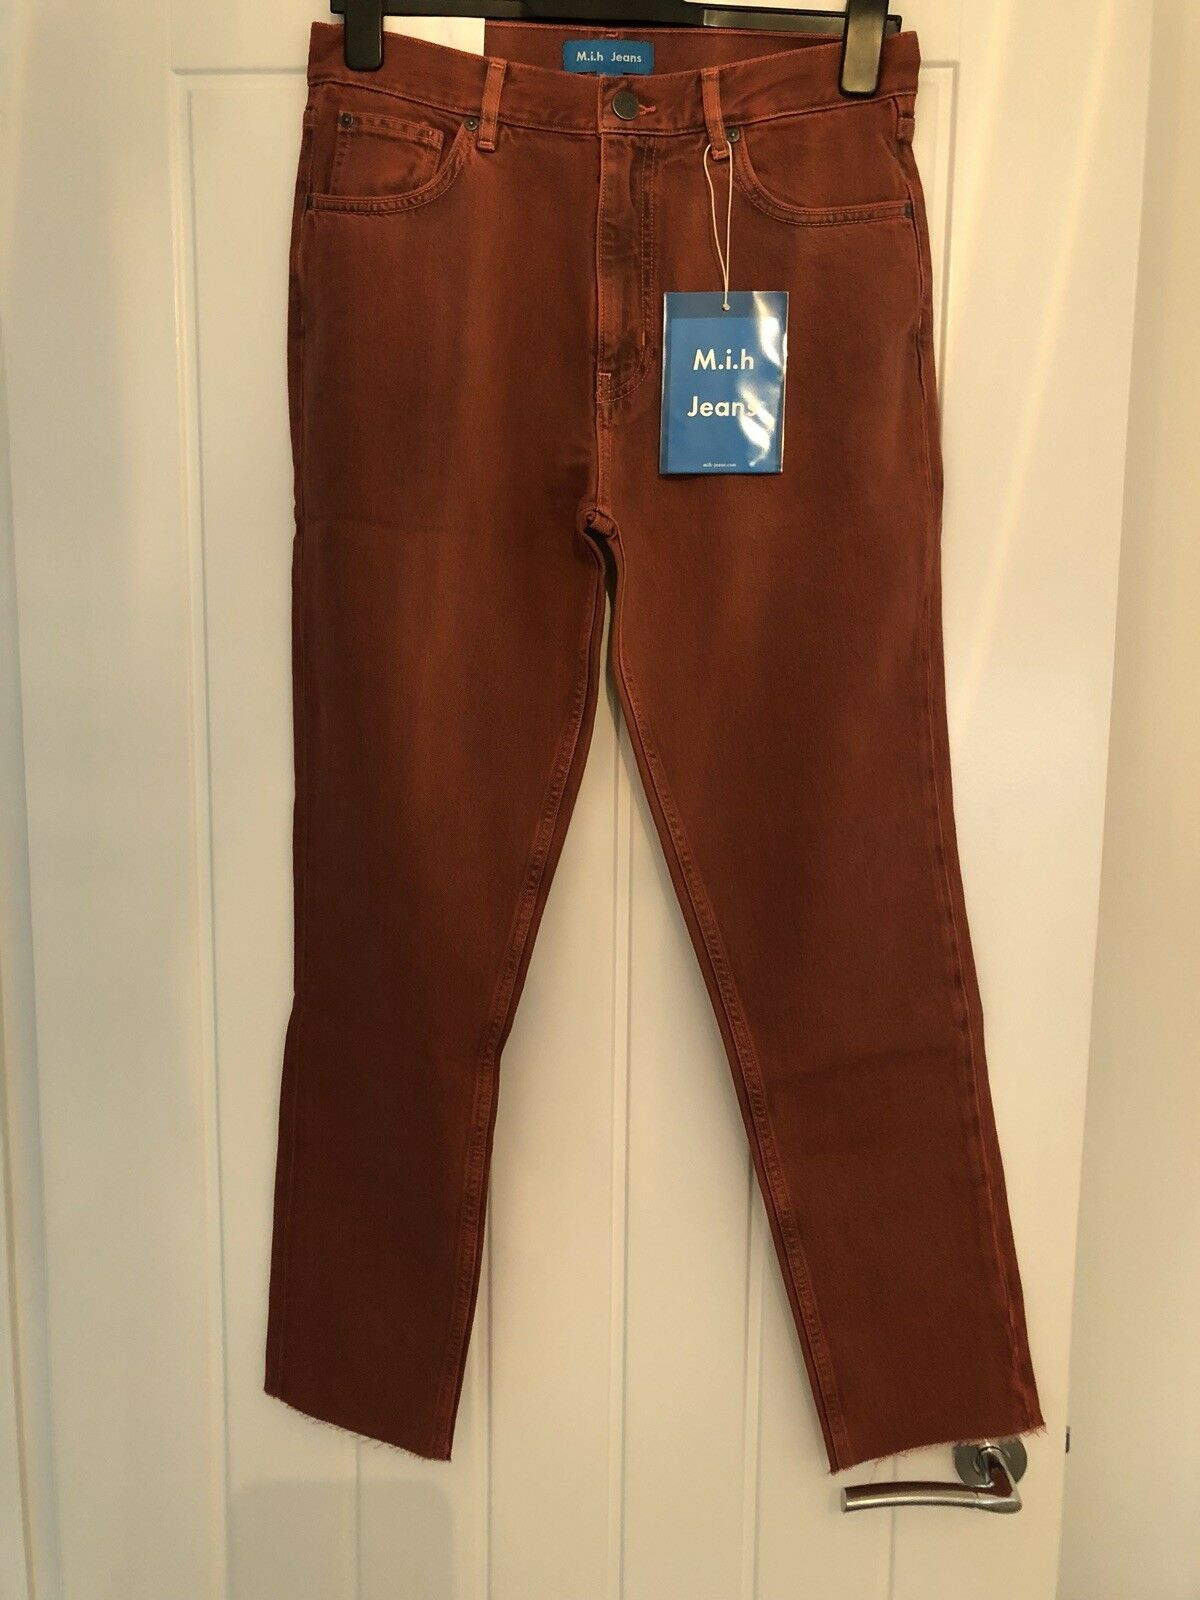 M.i.h Mimi Jeans-High Rise Vintage Slim- Size 26-Red Copper BNWT